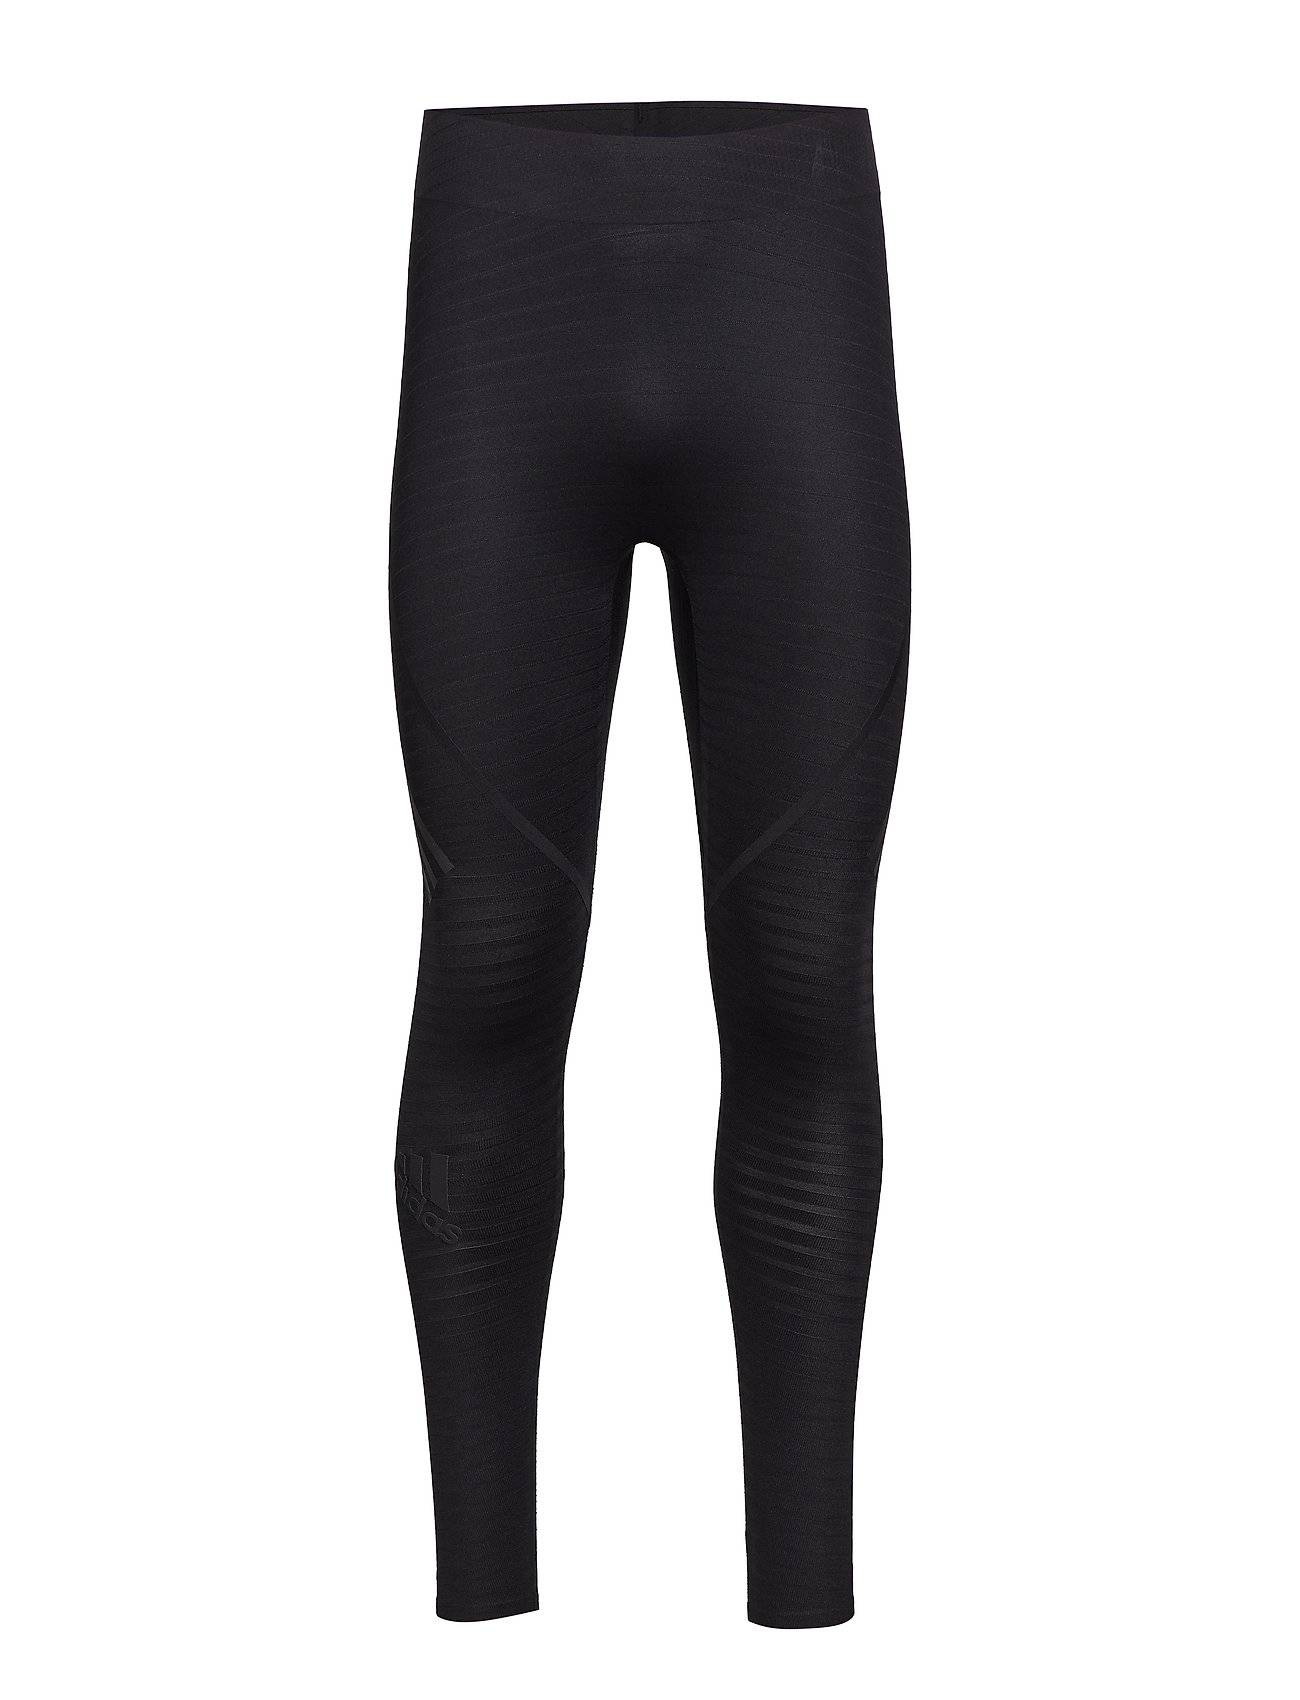 Image of adidas Performance Ask 360 Lt 3s J Running/training Tights Musta Adidas Performance